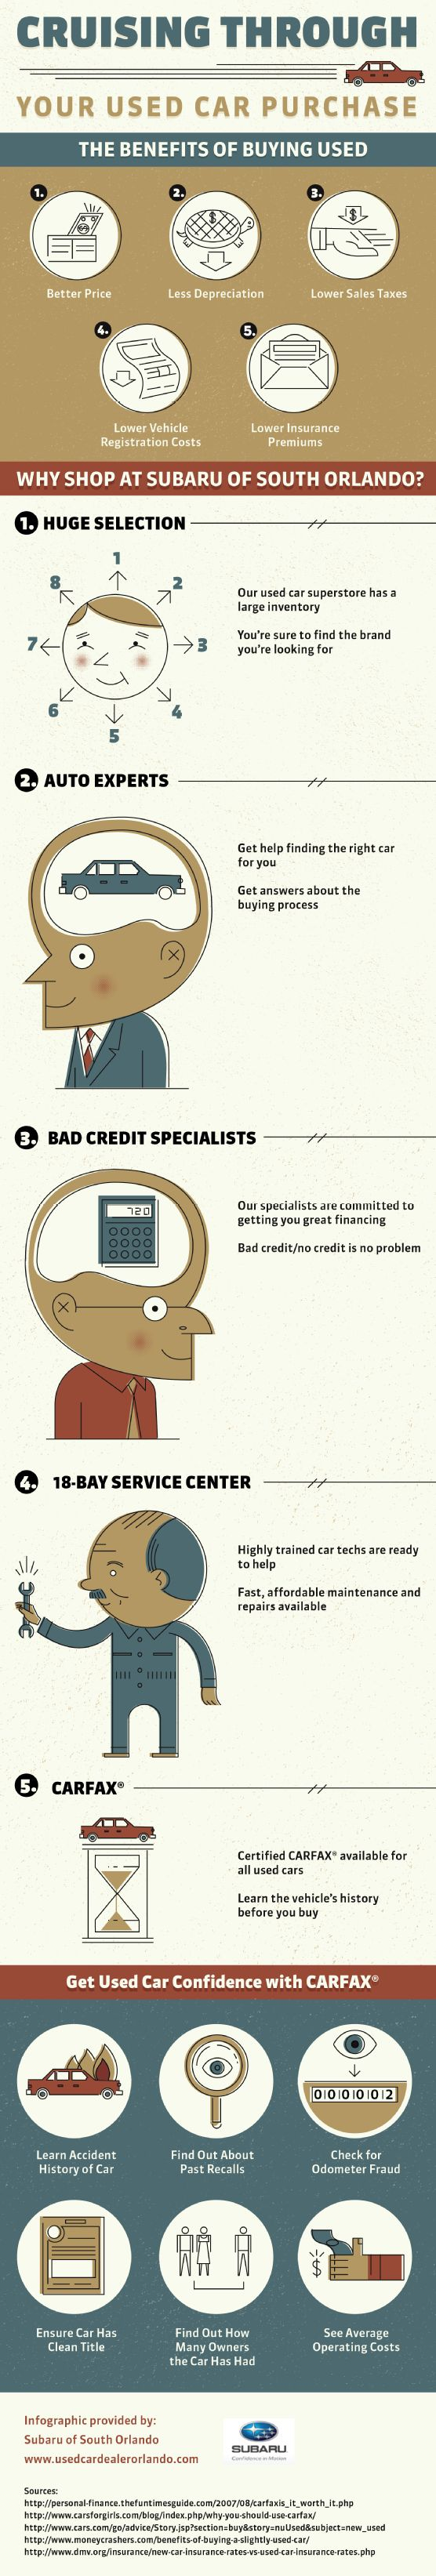 Cruising Through Your Used Car Purchase   #infographic #UsedCar #Purchase